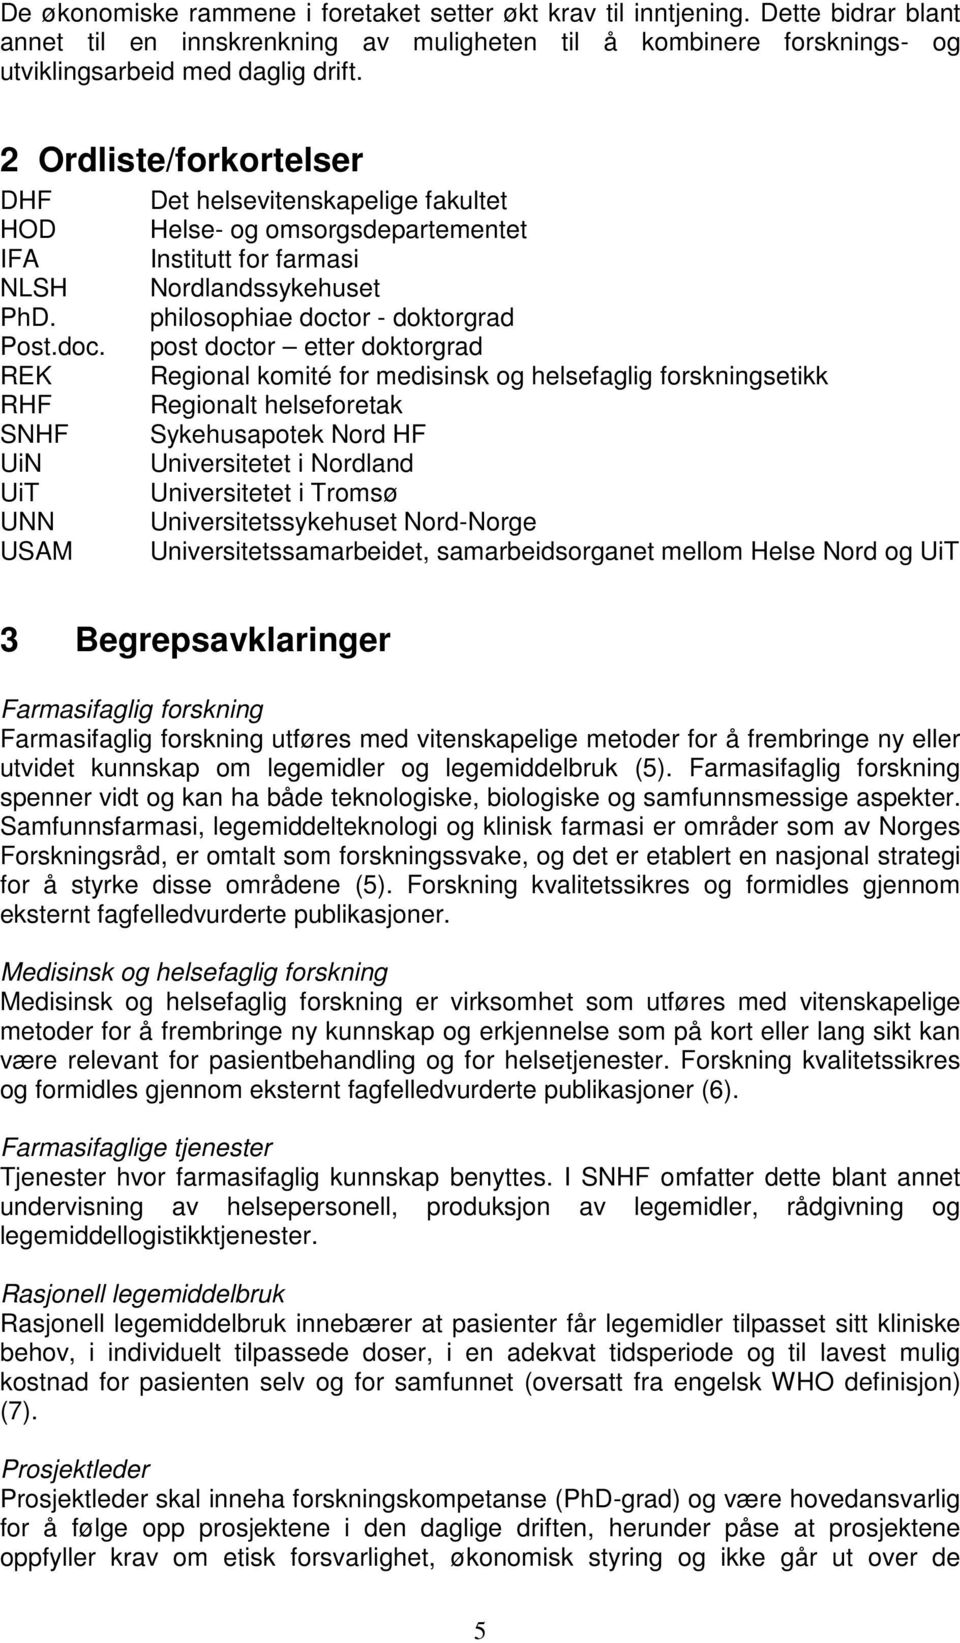 or - doktorgrad Post.doc.